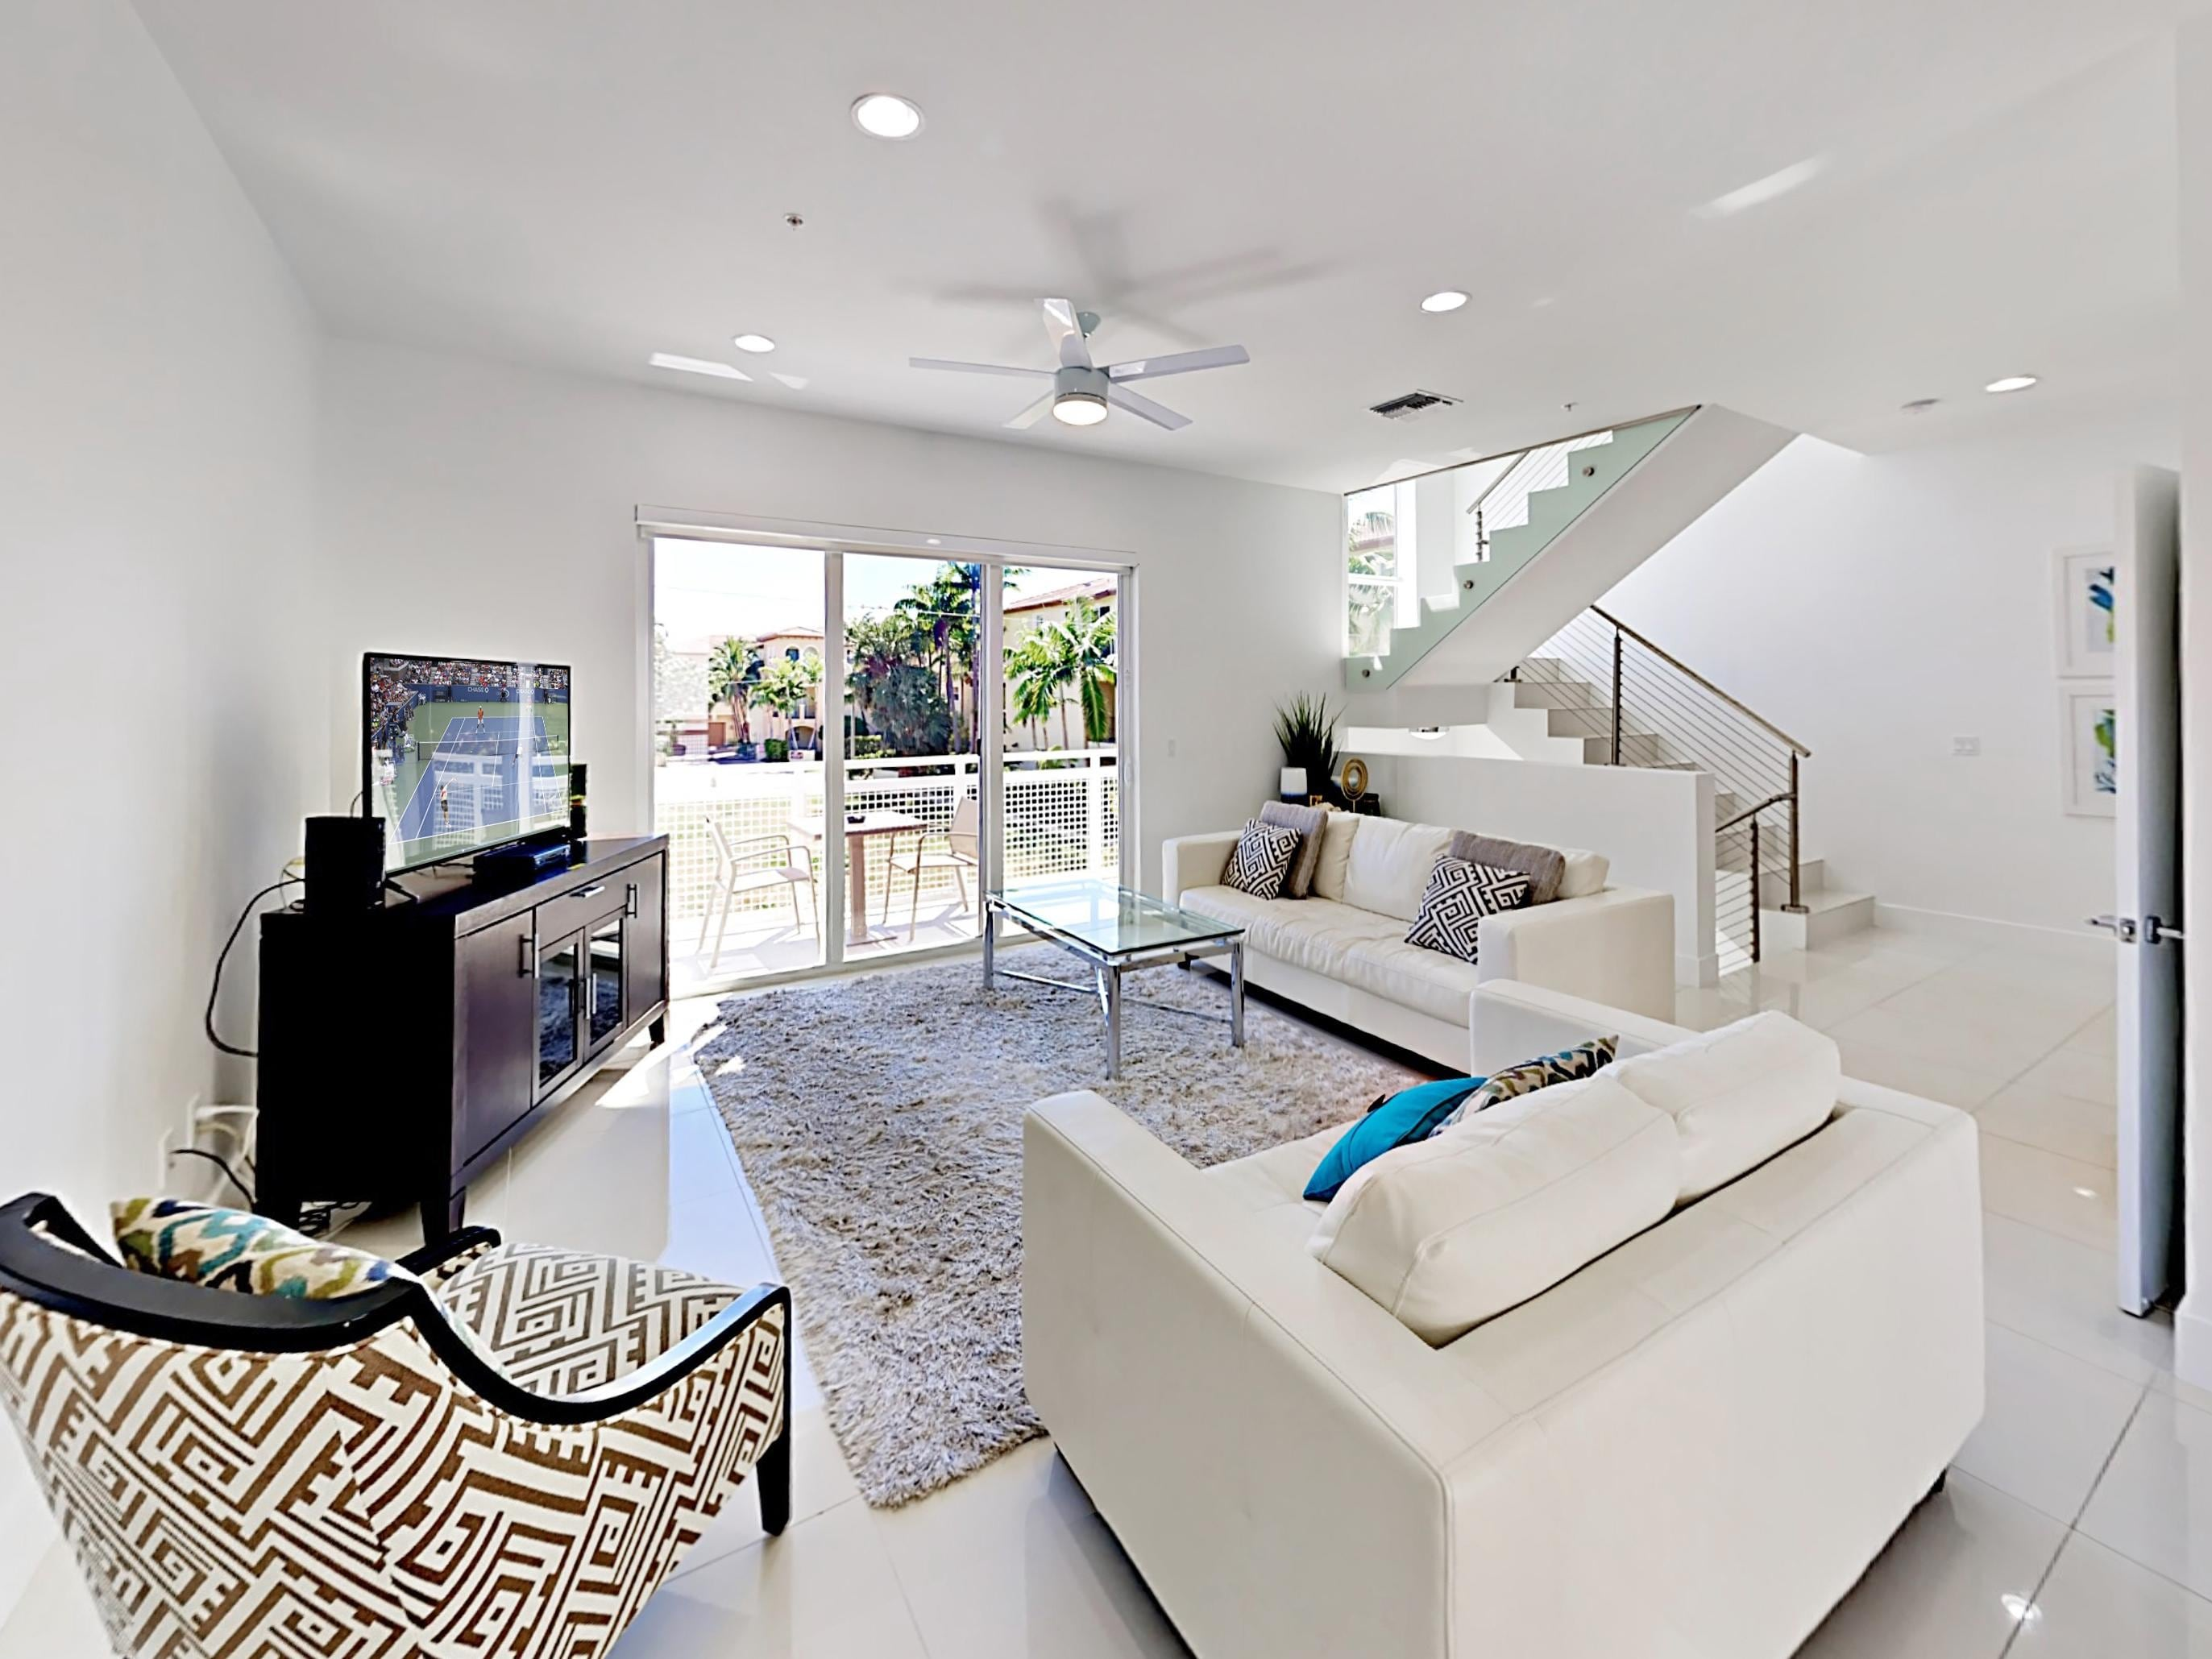 Welcome to Pompano Beach! Your rental is professionally managed by TurnKey Vacation Rentals.